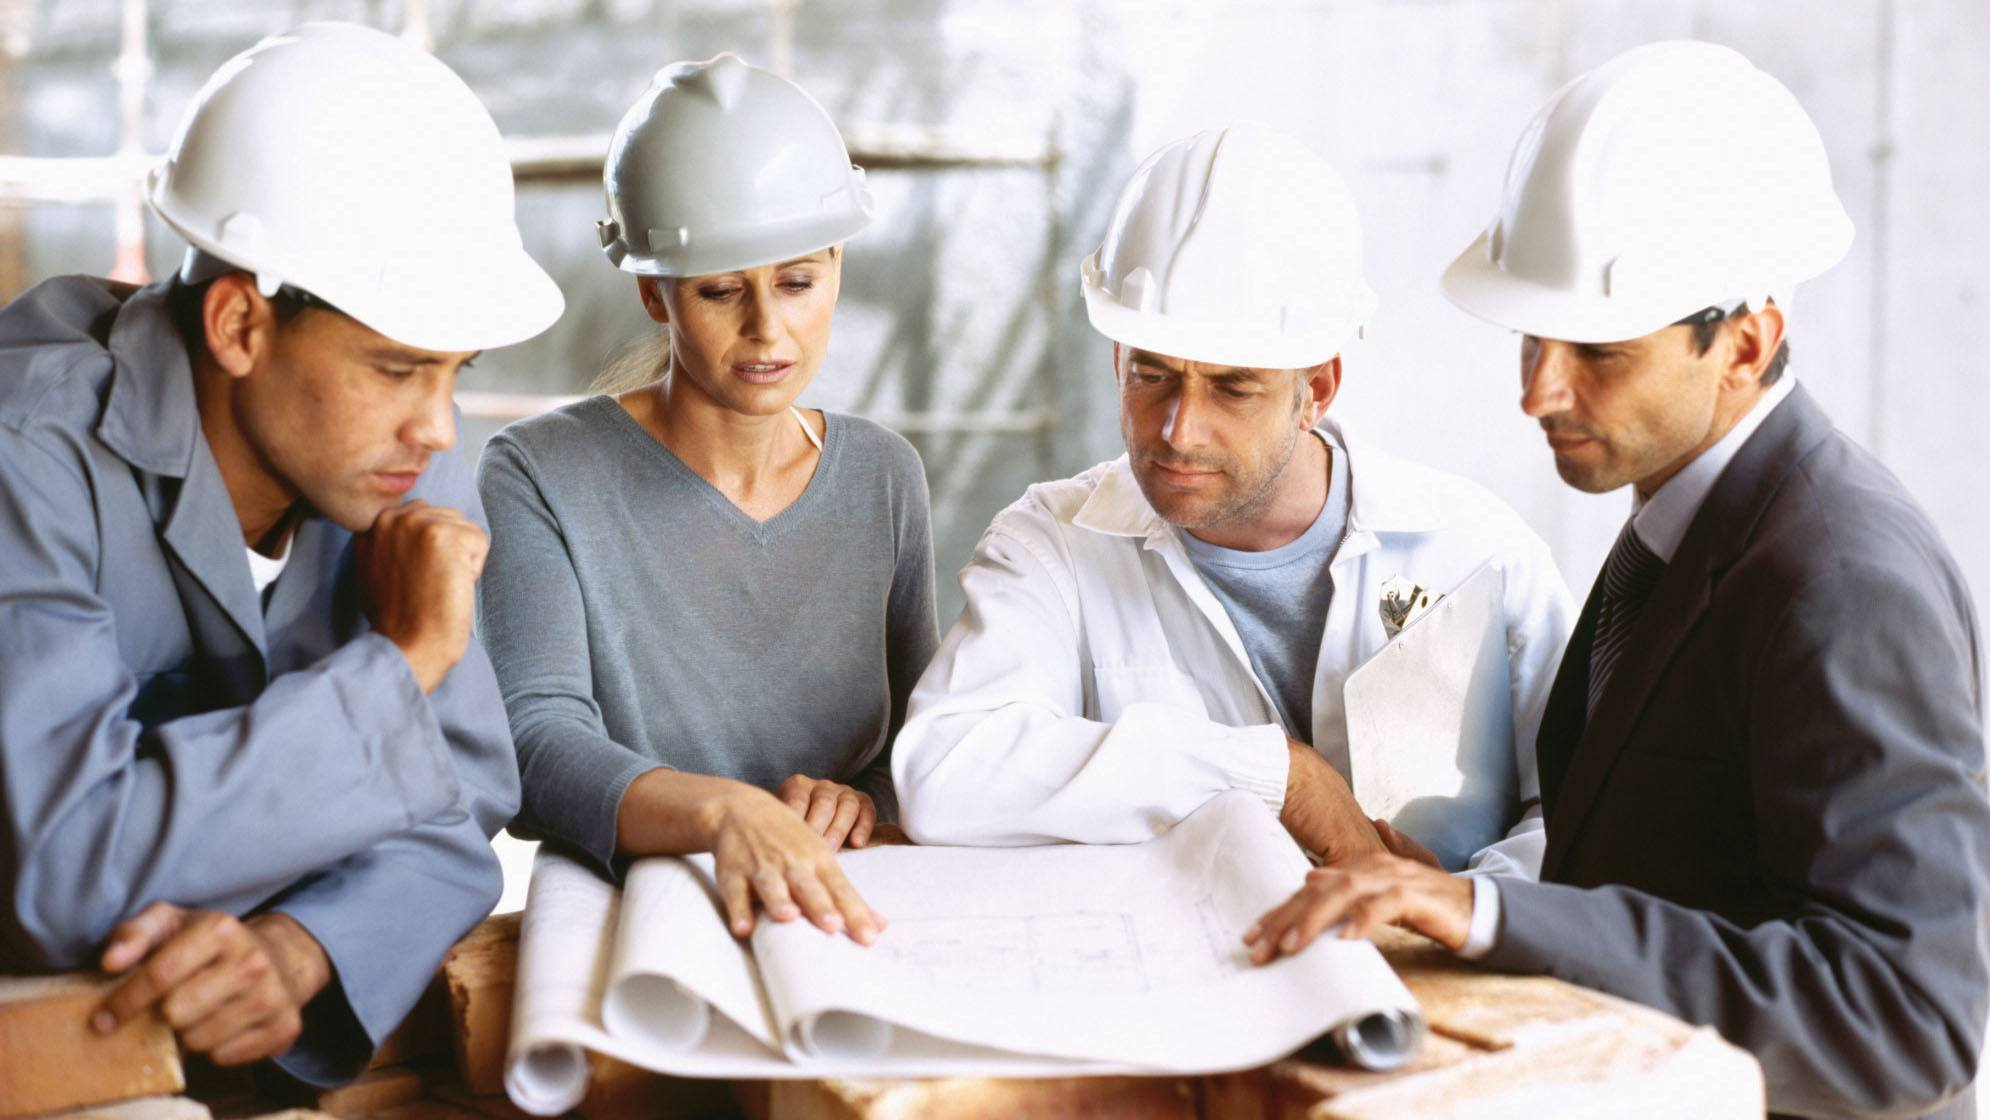 project engineer in a meeting with other project engineers standing around reading a piping and instrument diagram.